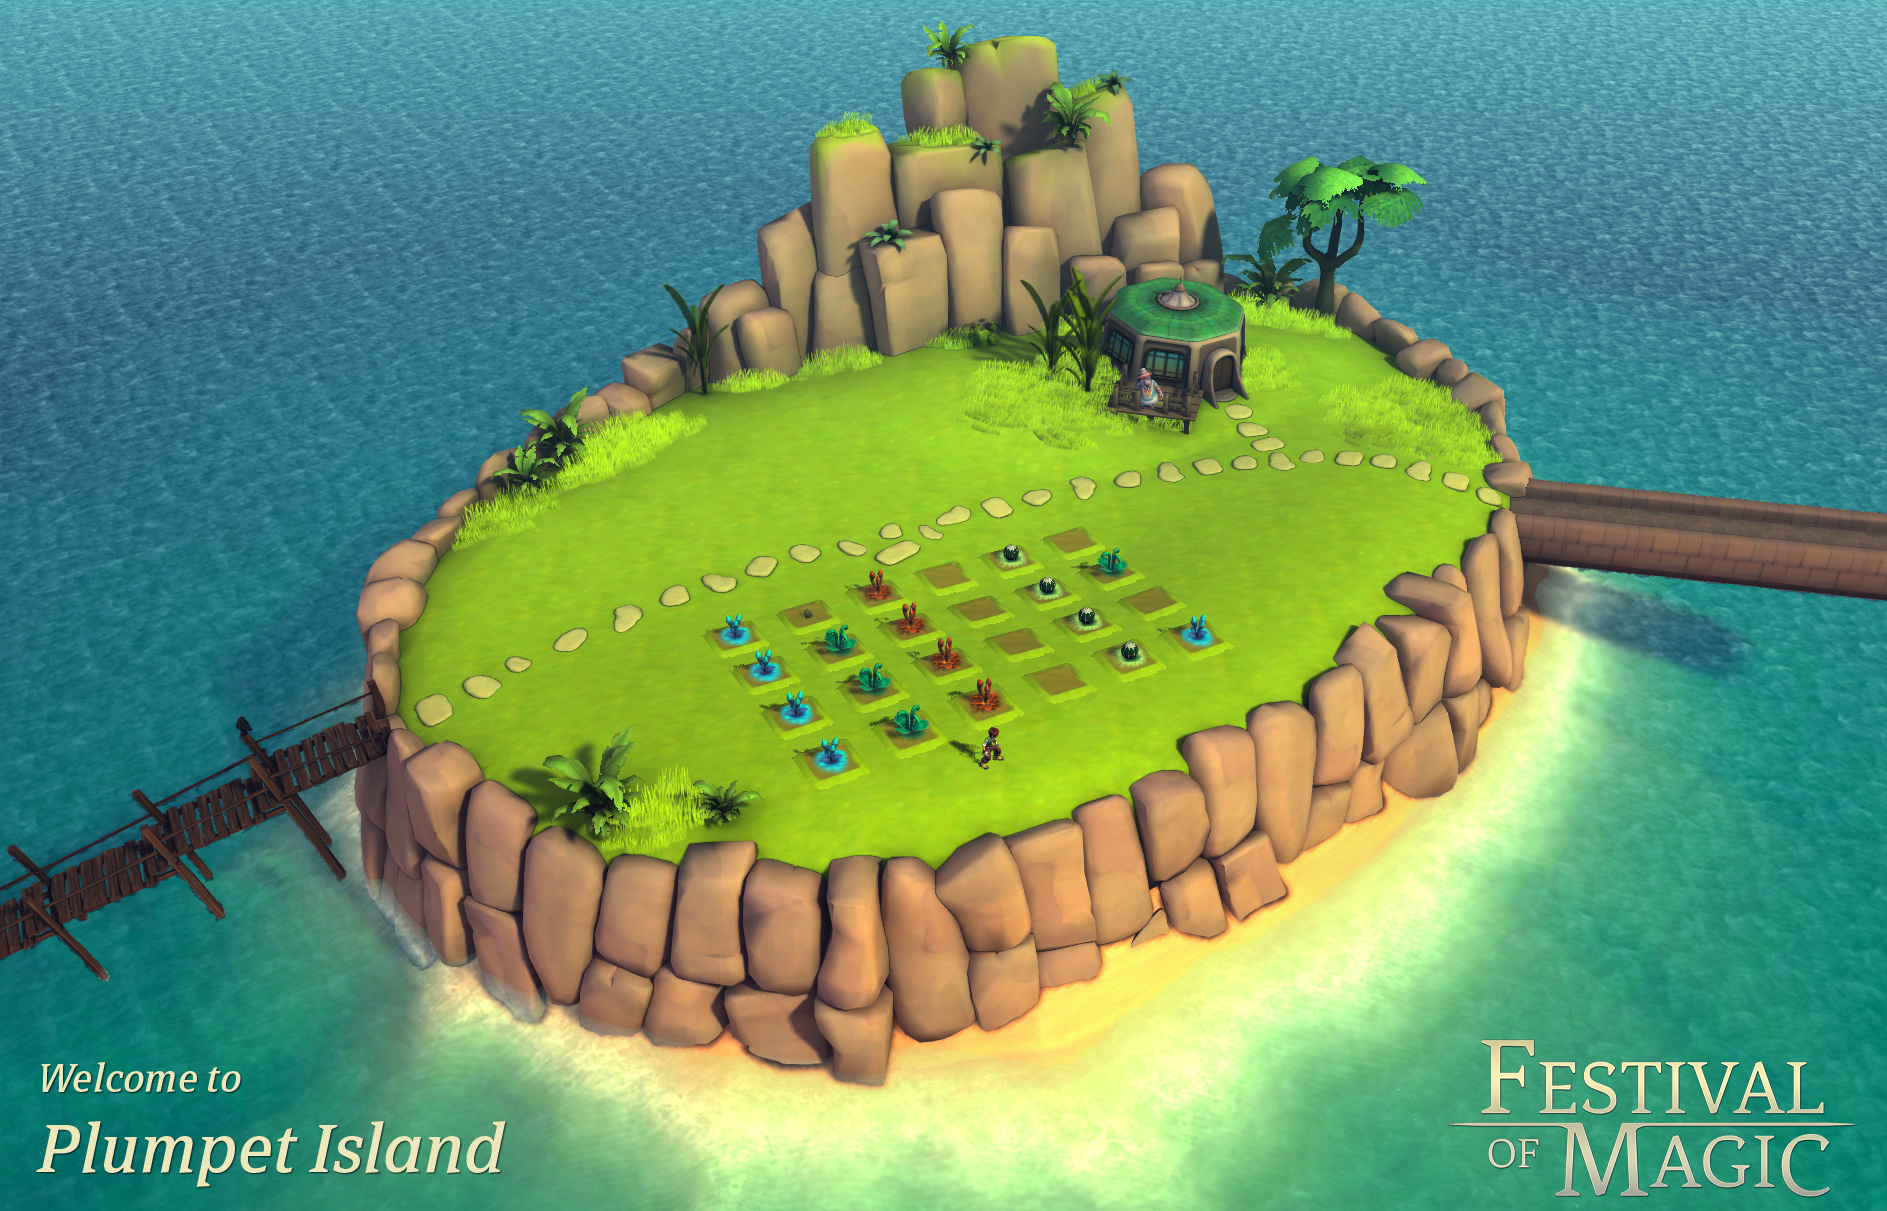 Plumpet Island (Festival of Magic)